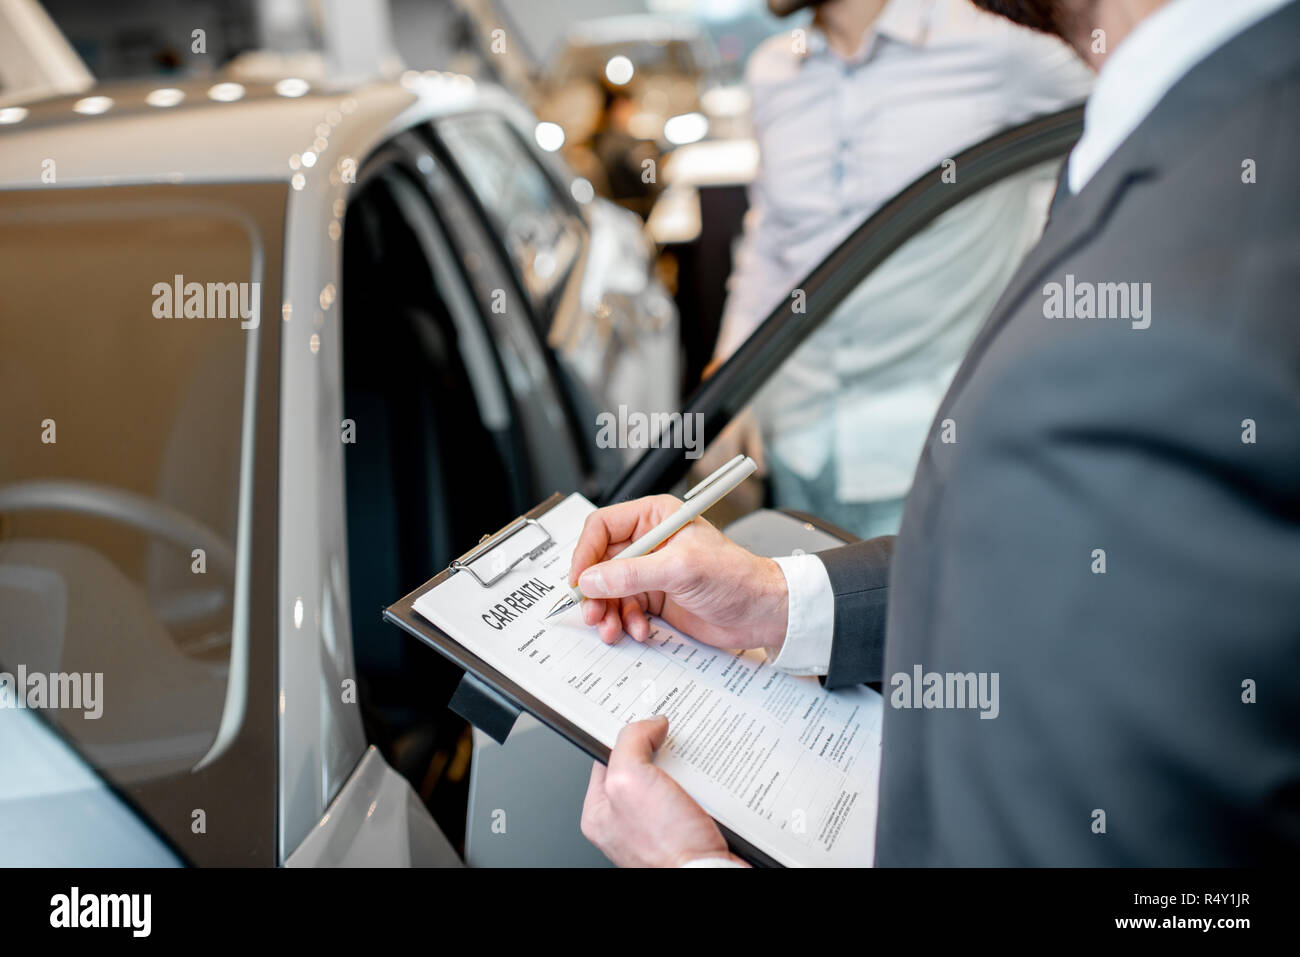 Car Rental Contract High Resolution Stock Photography And Images Alamy